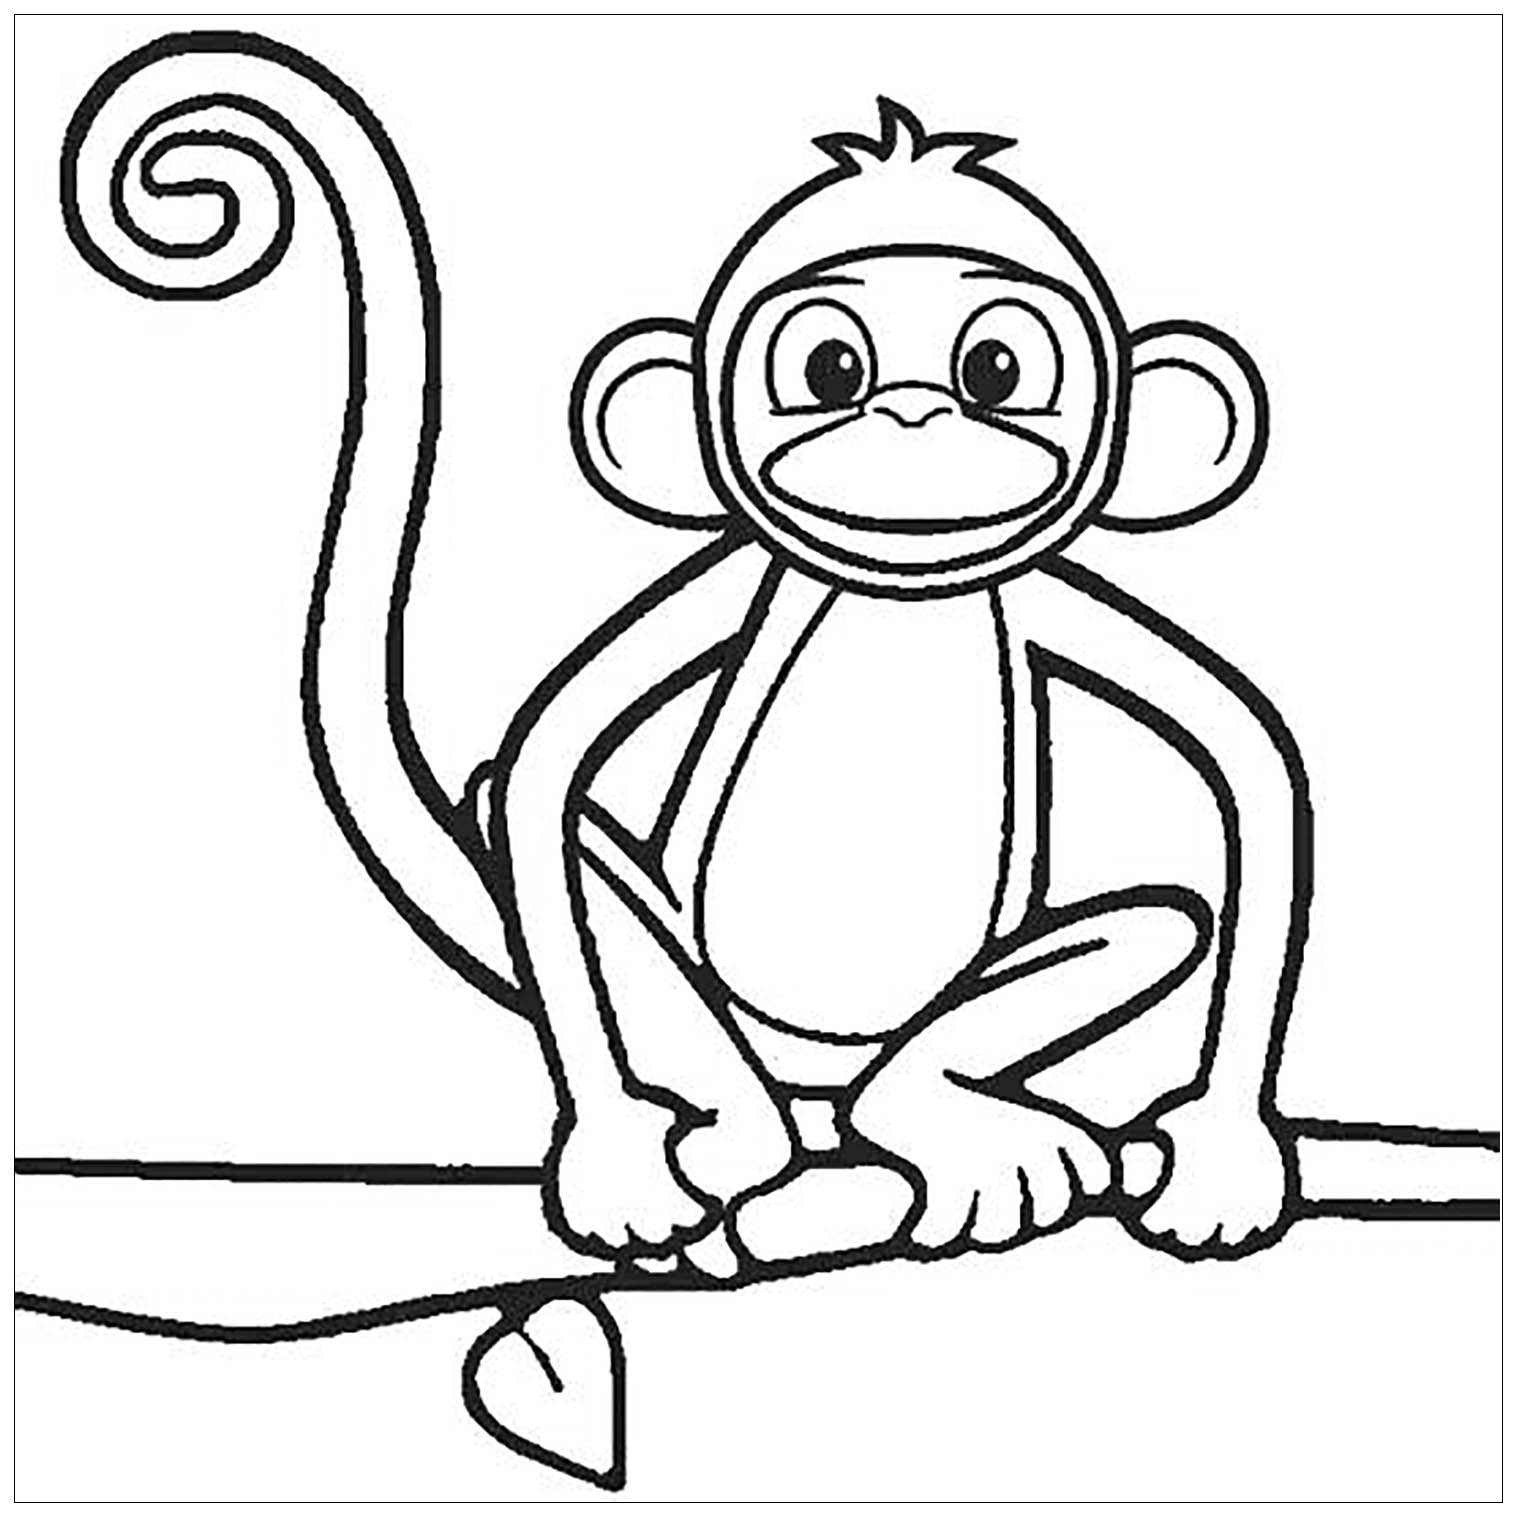 Worksheet Spider Monkey